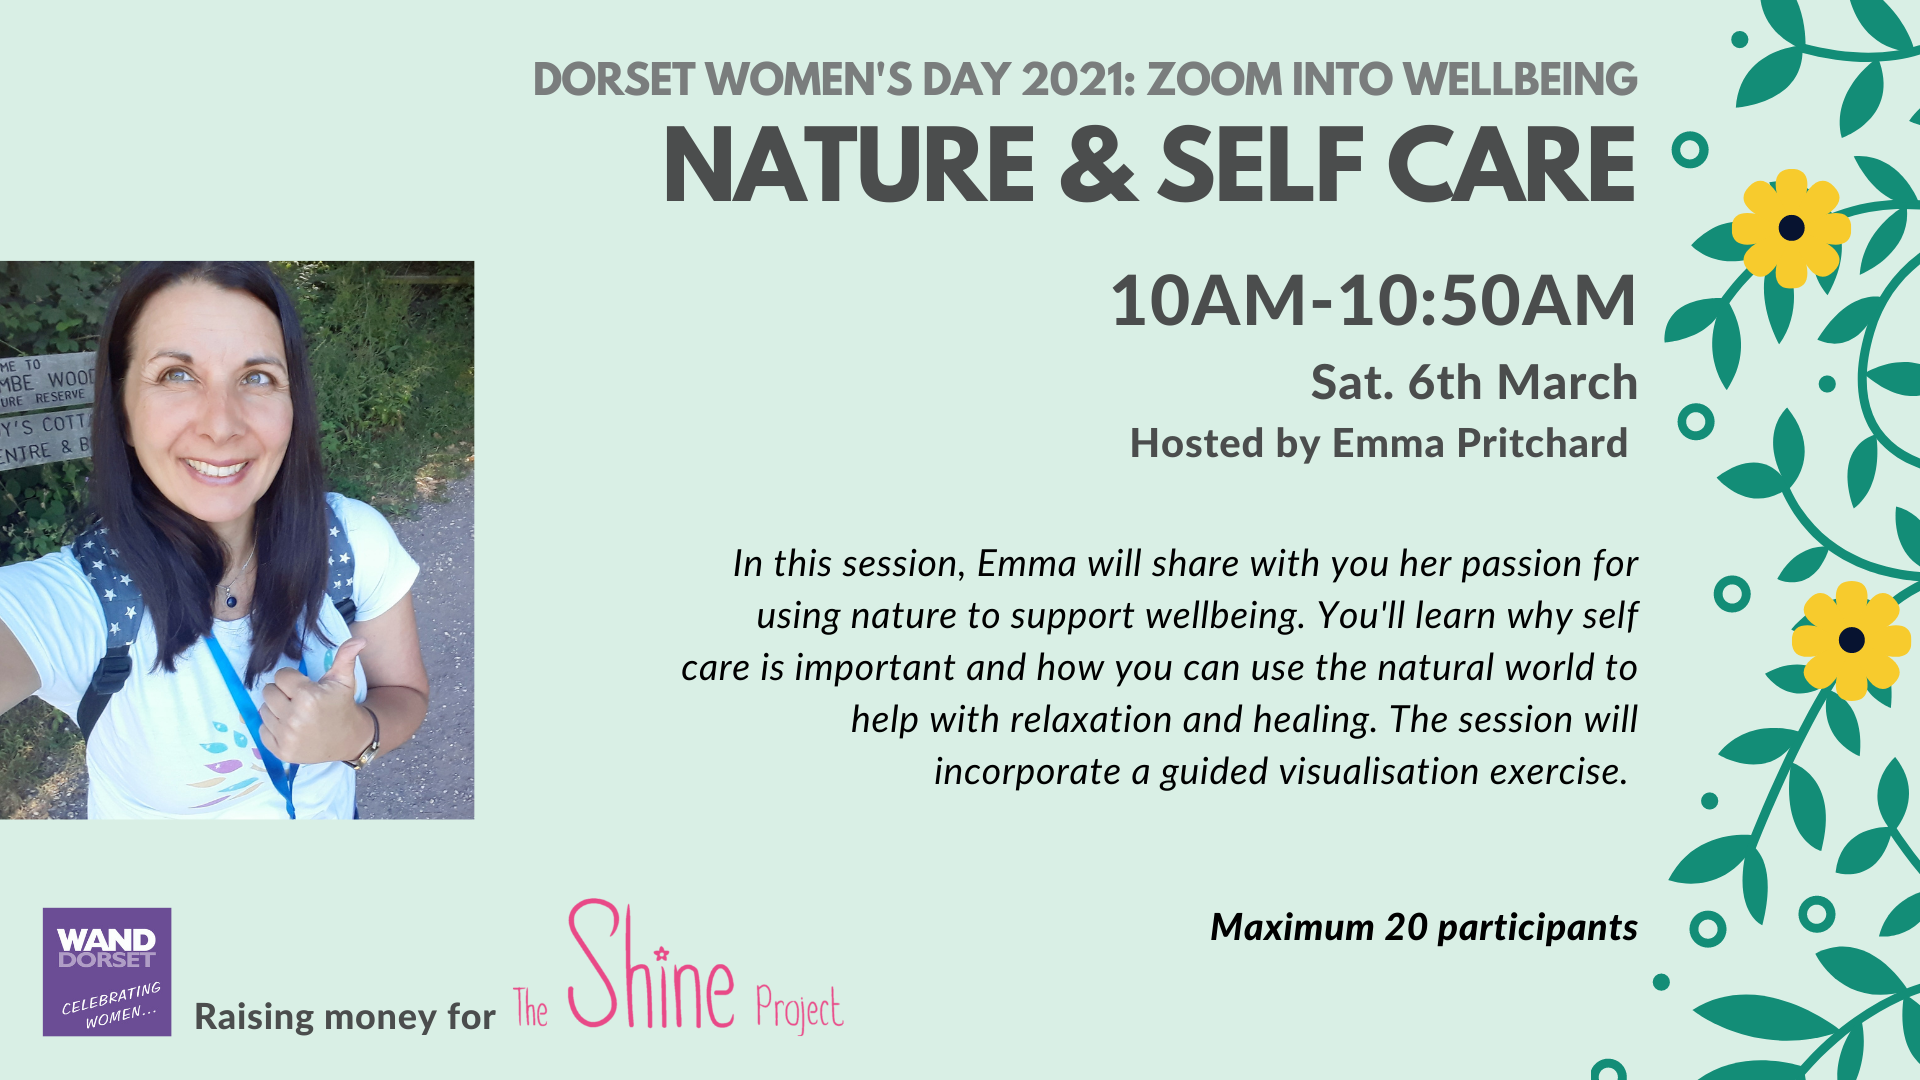 Dorset Women's Day 2021: Nature & Self Care - FULLY BOOKED!